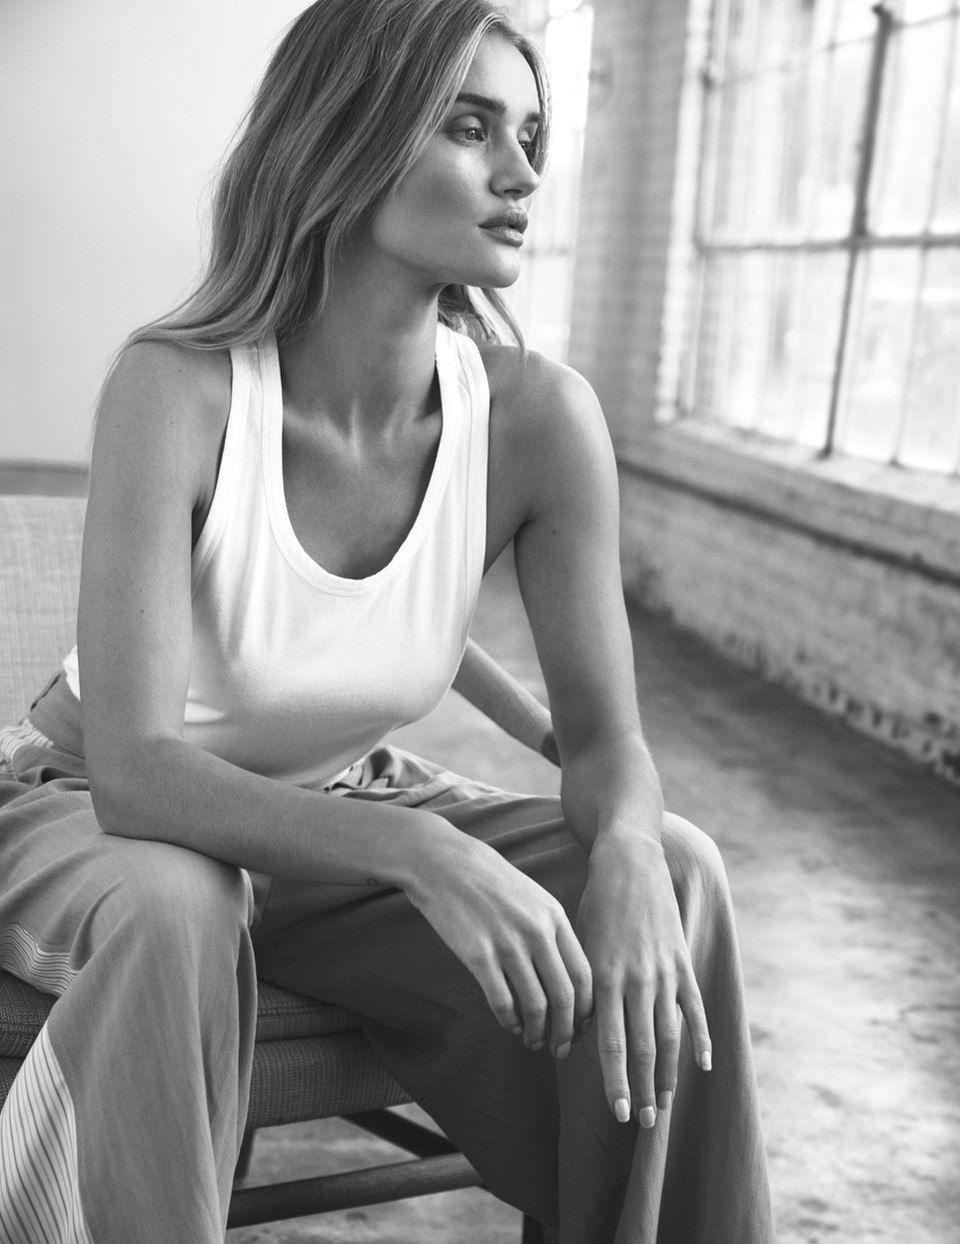 ROSIE_HUNTINGTON_WHITLEY_SHOT_01_139_2514DR_B_ADOBERGB